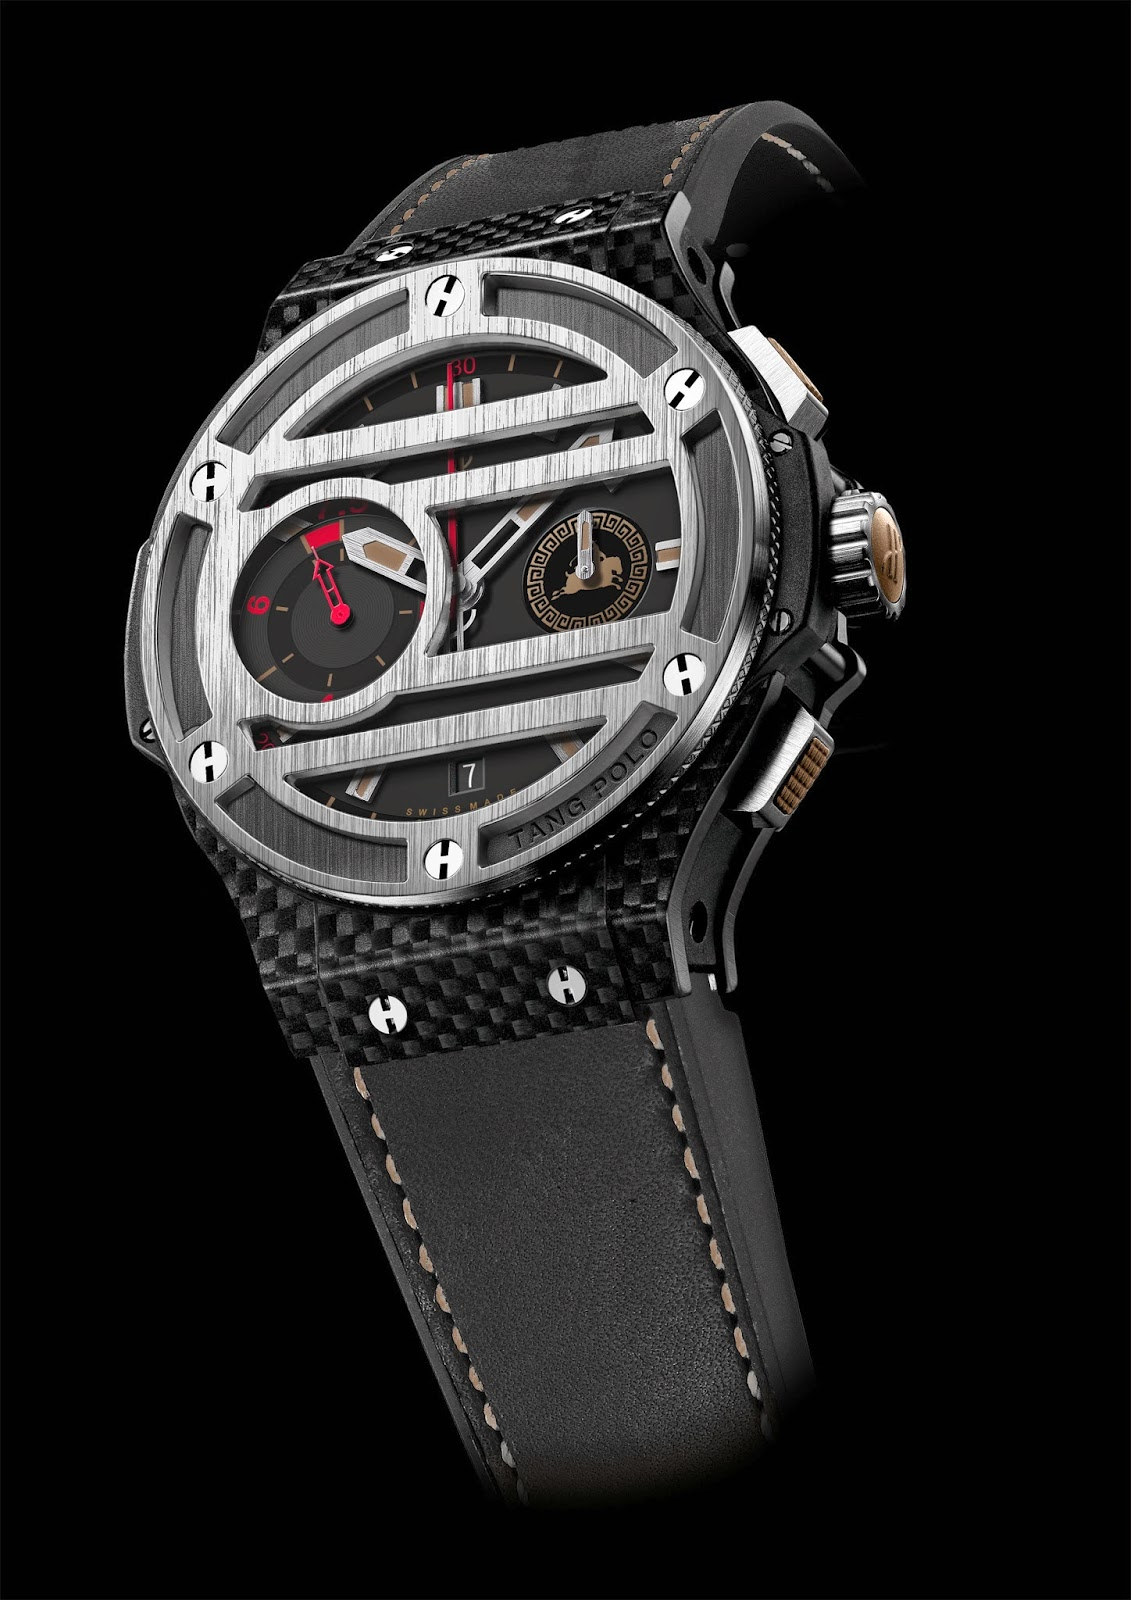 Hublot ggg limited edition